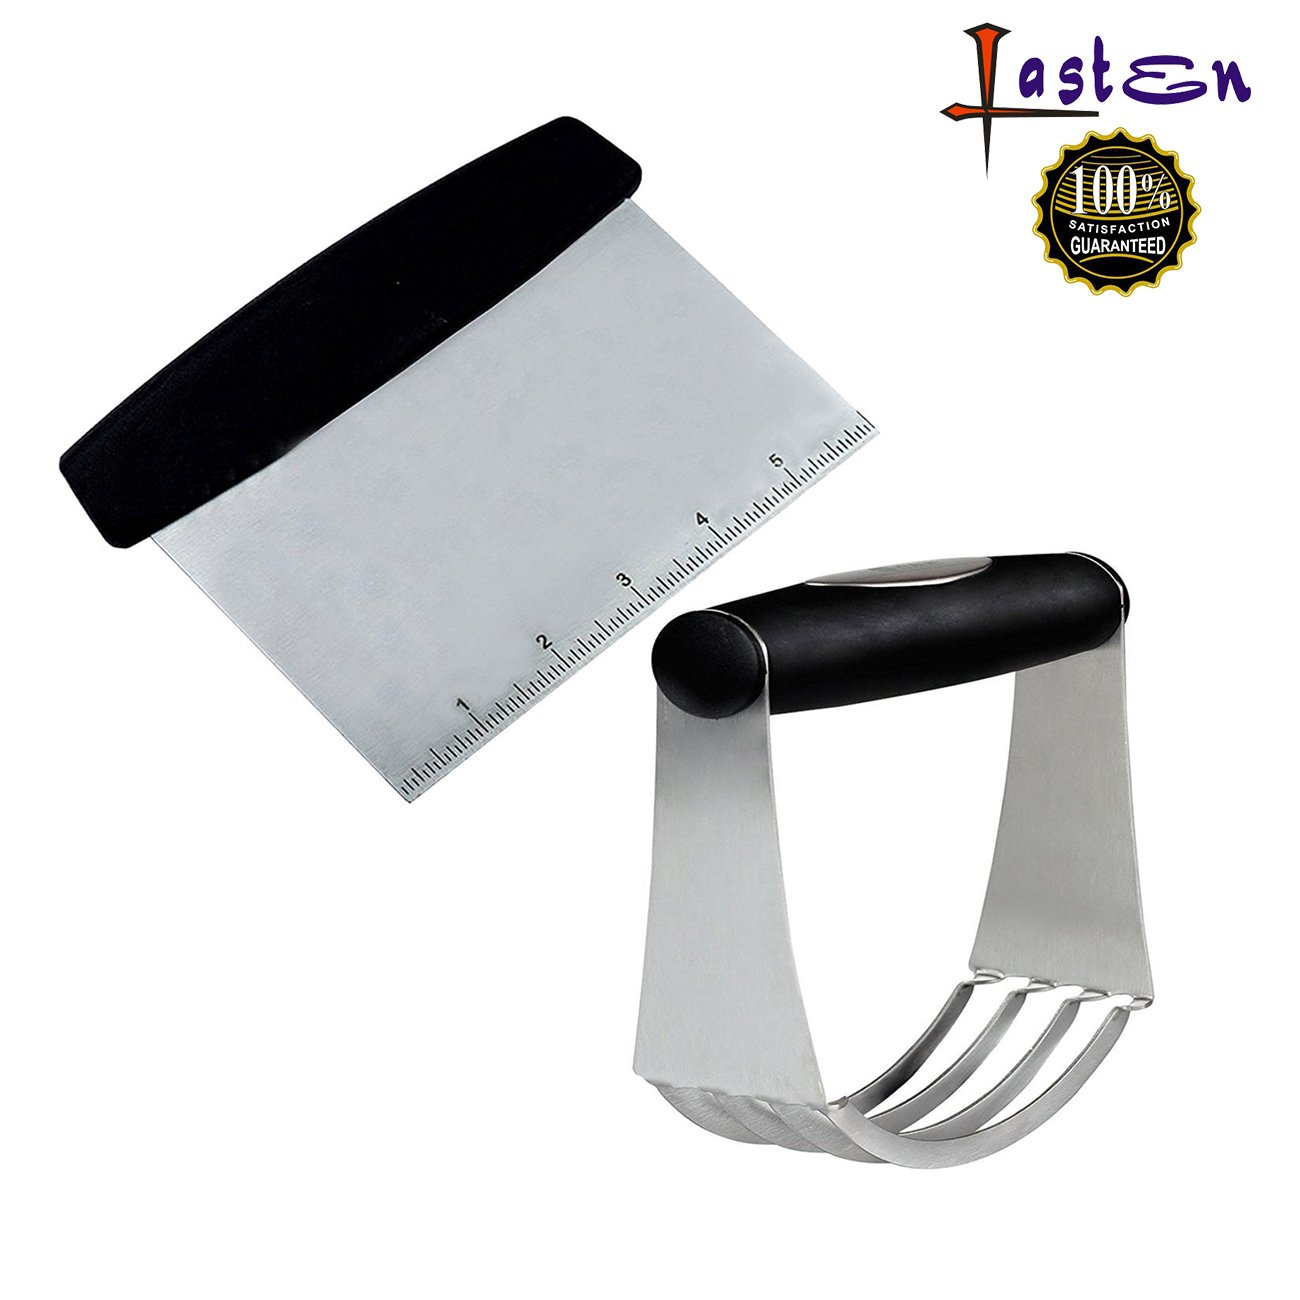 Lasten Baking Dough Blender and Dough Scraper Set, Stainless Steel Pastry Cutter and Scraper, Pastry Blender With Blades, Nut Chopper, Pizza Dough Baking Pastry Cutter For Your Kitchen by Lasten